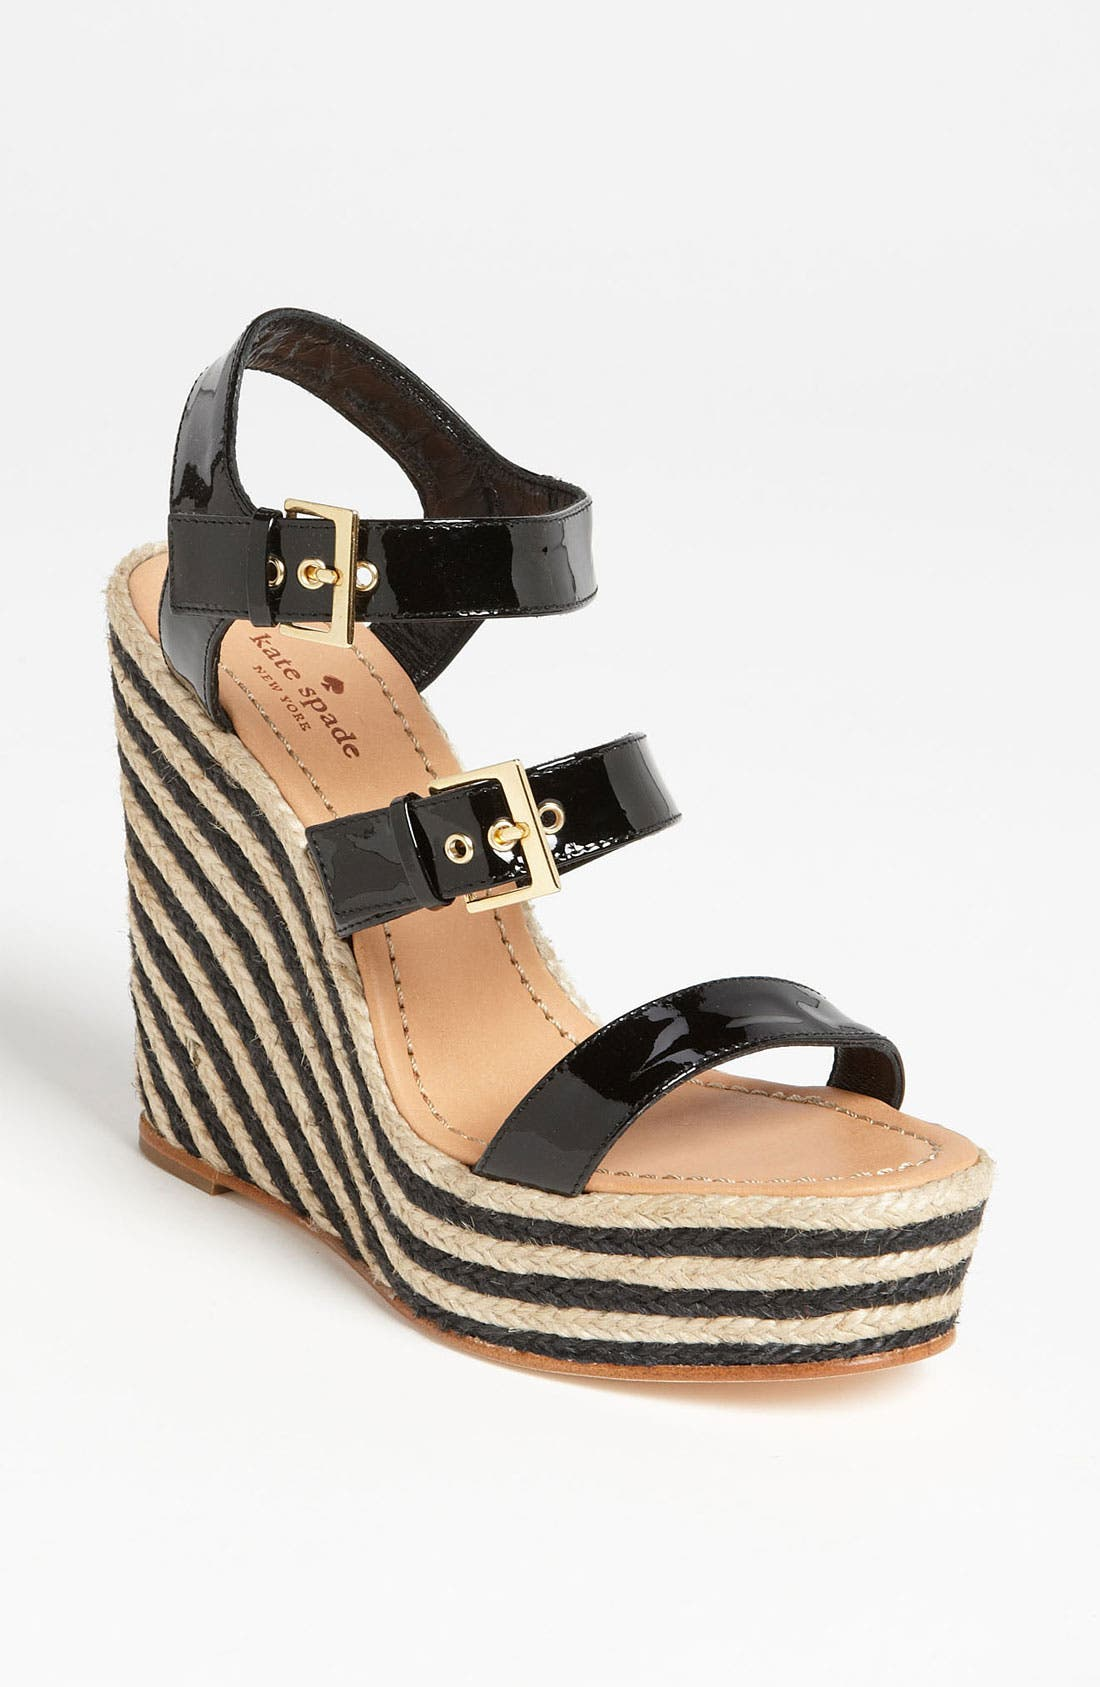 Main Image - kate spade new york 'lucie' espadrille sandal